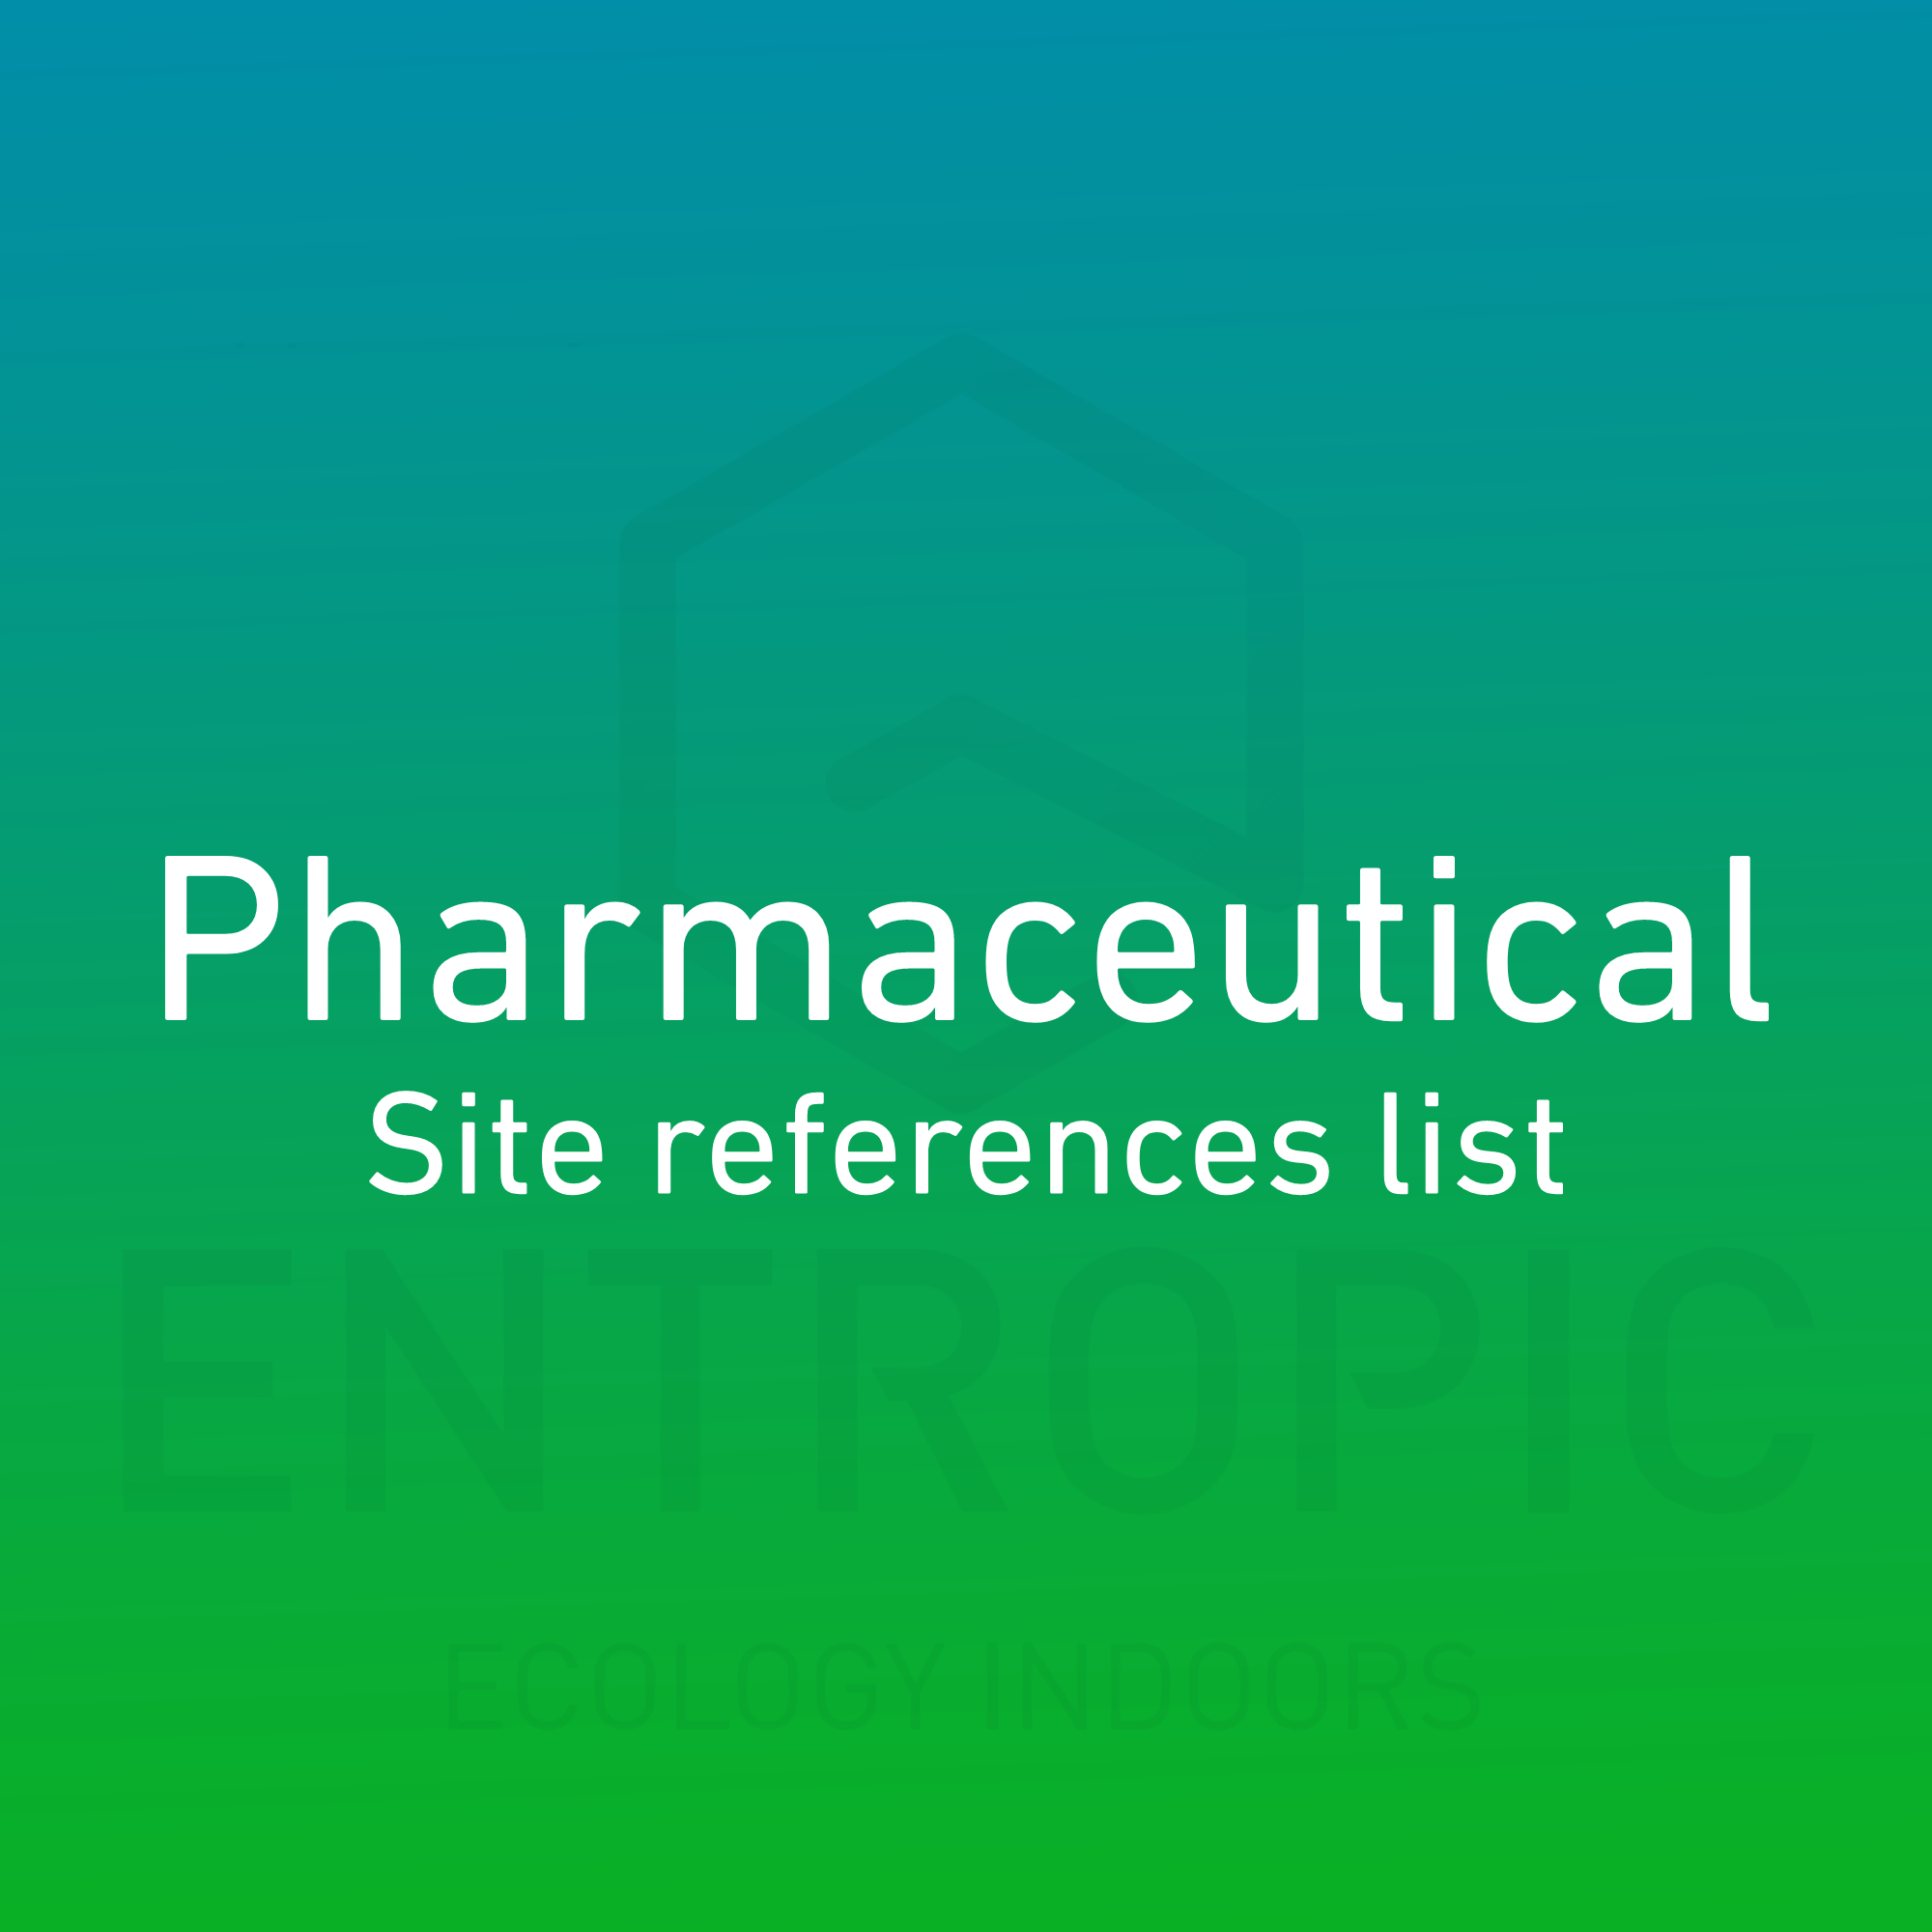 pharmaceutical-site-reference-list